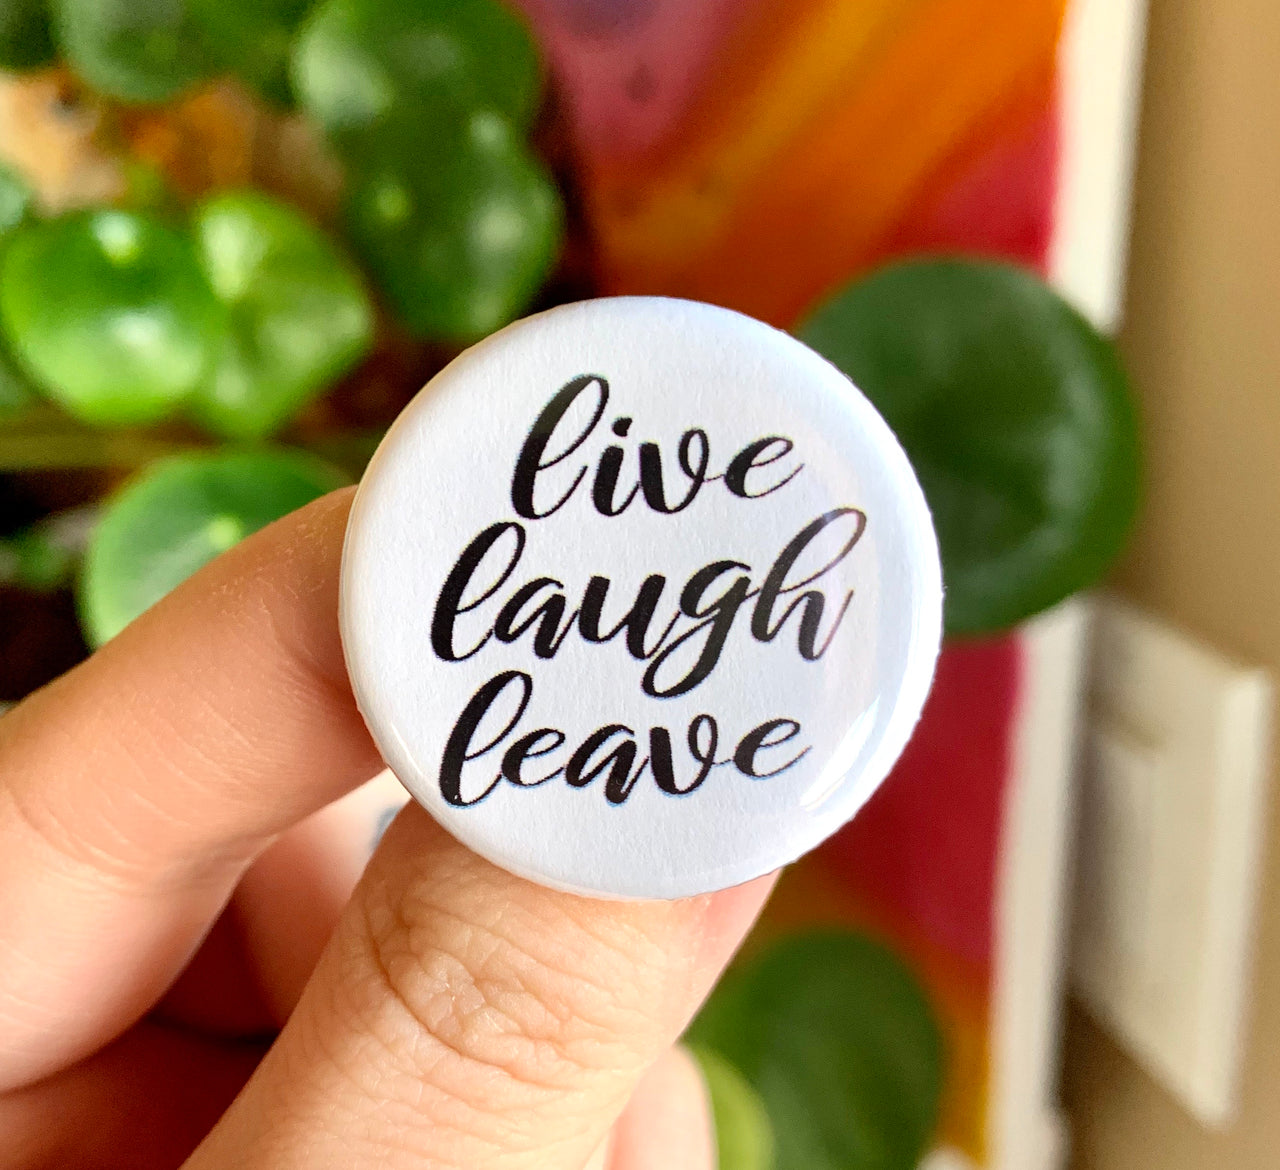 Live laugh leave - Radical Buttons